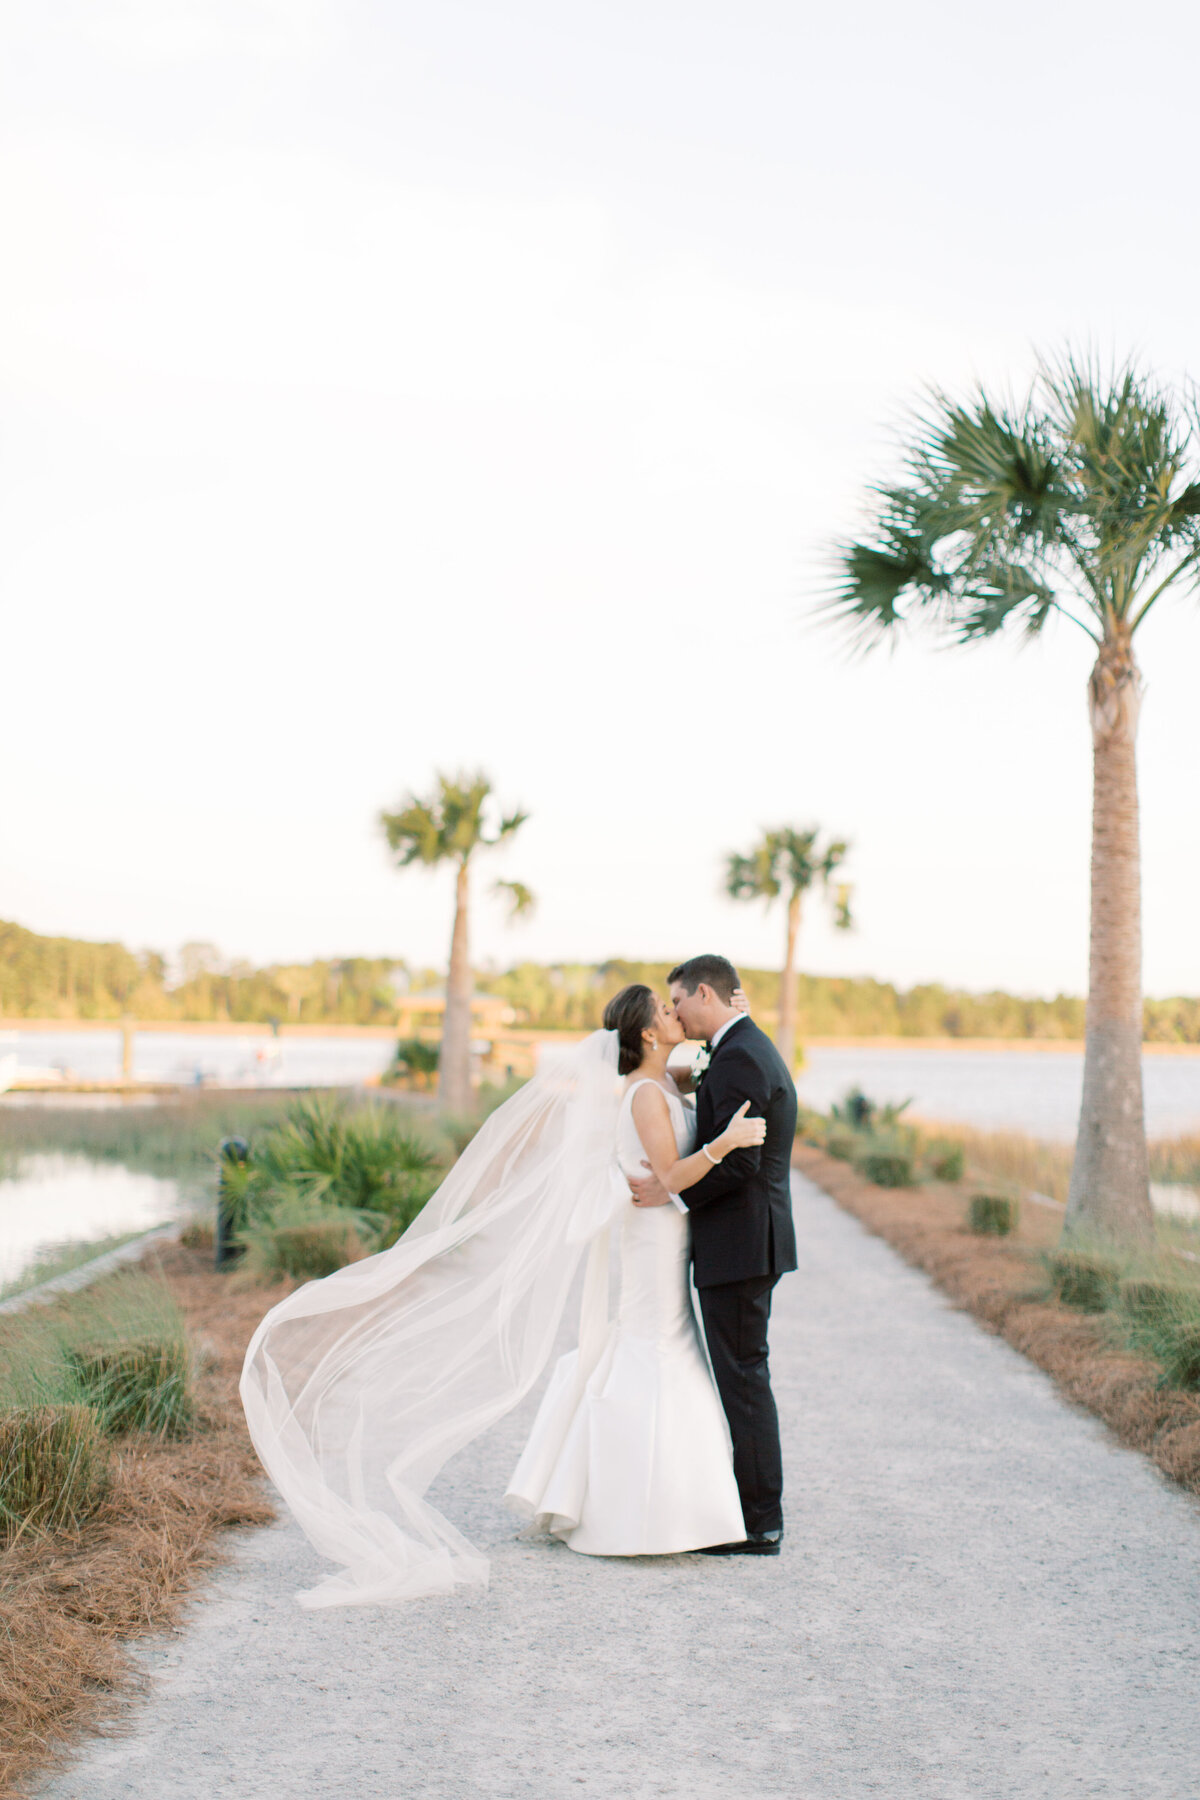 Powell_Oldfield_River_Club_Bluffton_South_Carolina_Beaufort_Savannah_Wedding_Jacksonville_Florida_Devon_Donnahoo_Photography_0949